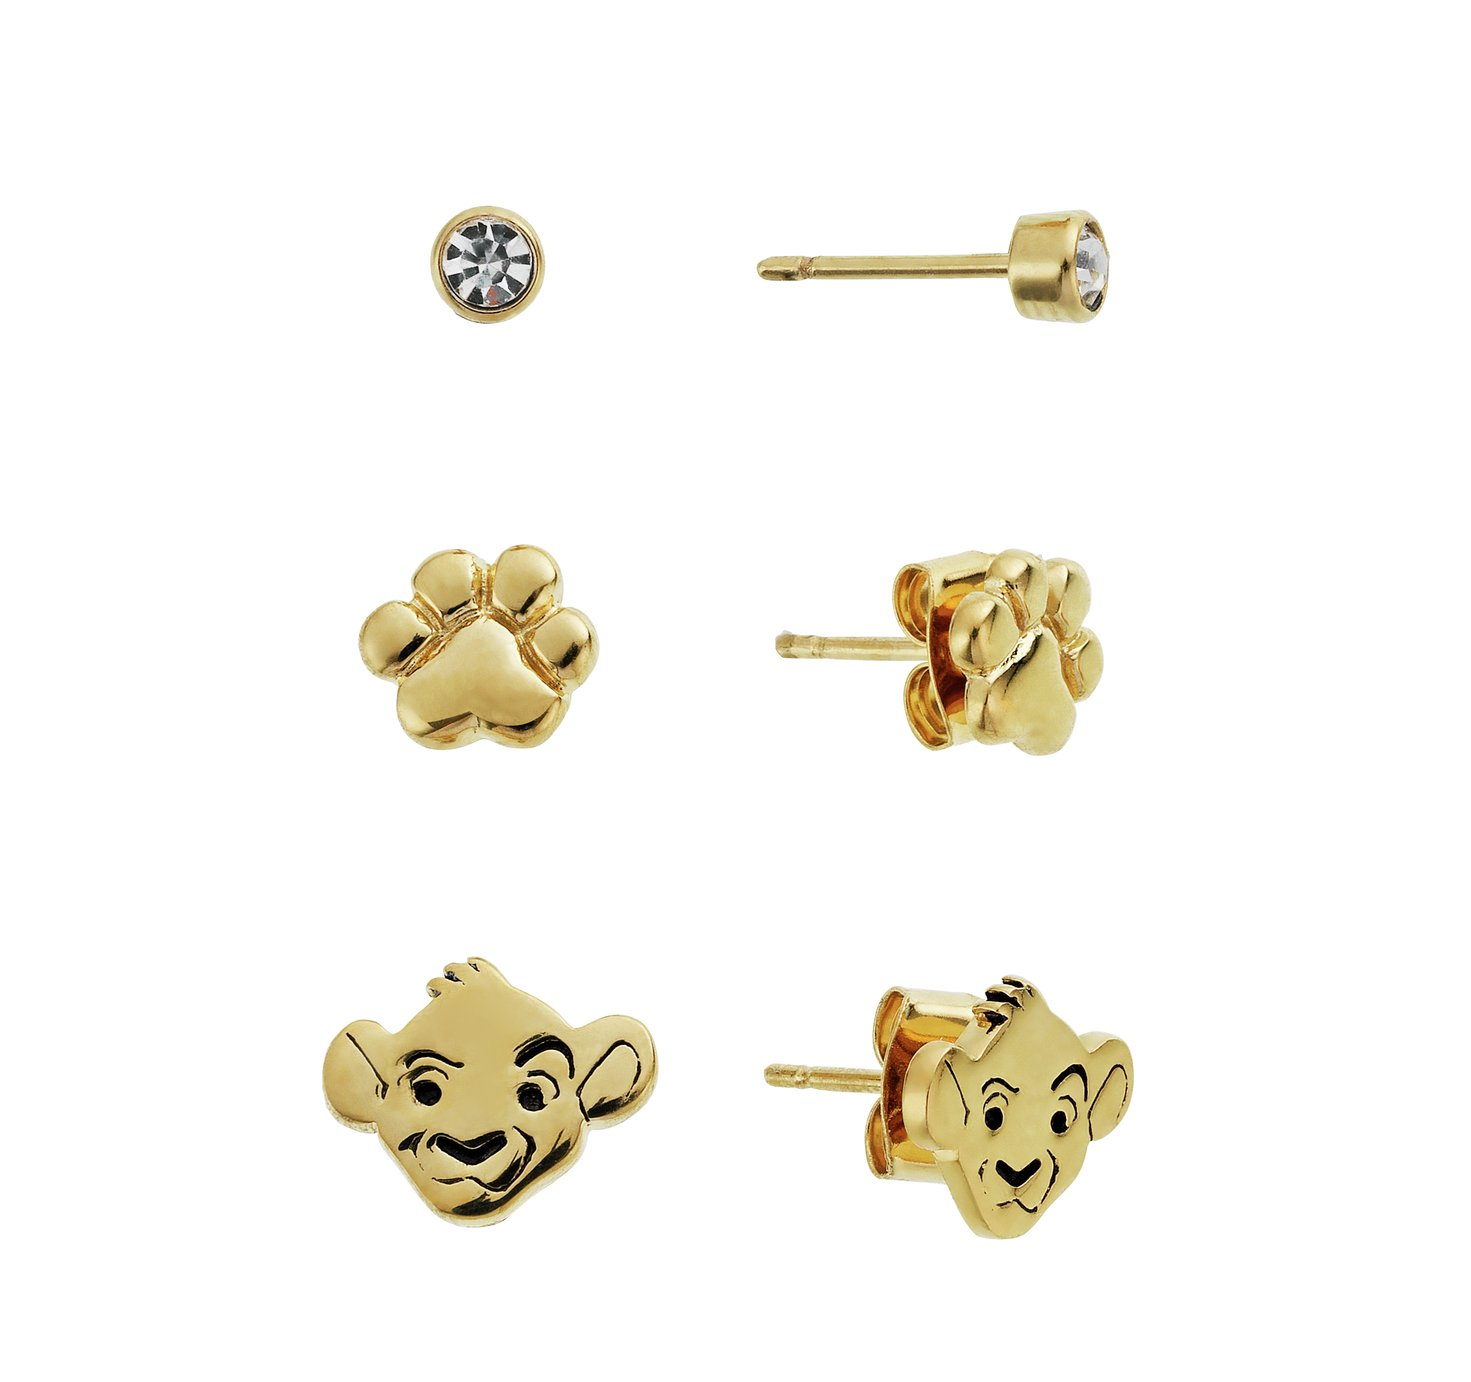 Disney Lion King Gold Colour Crystal Stud Earring - Set of 3